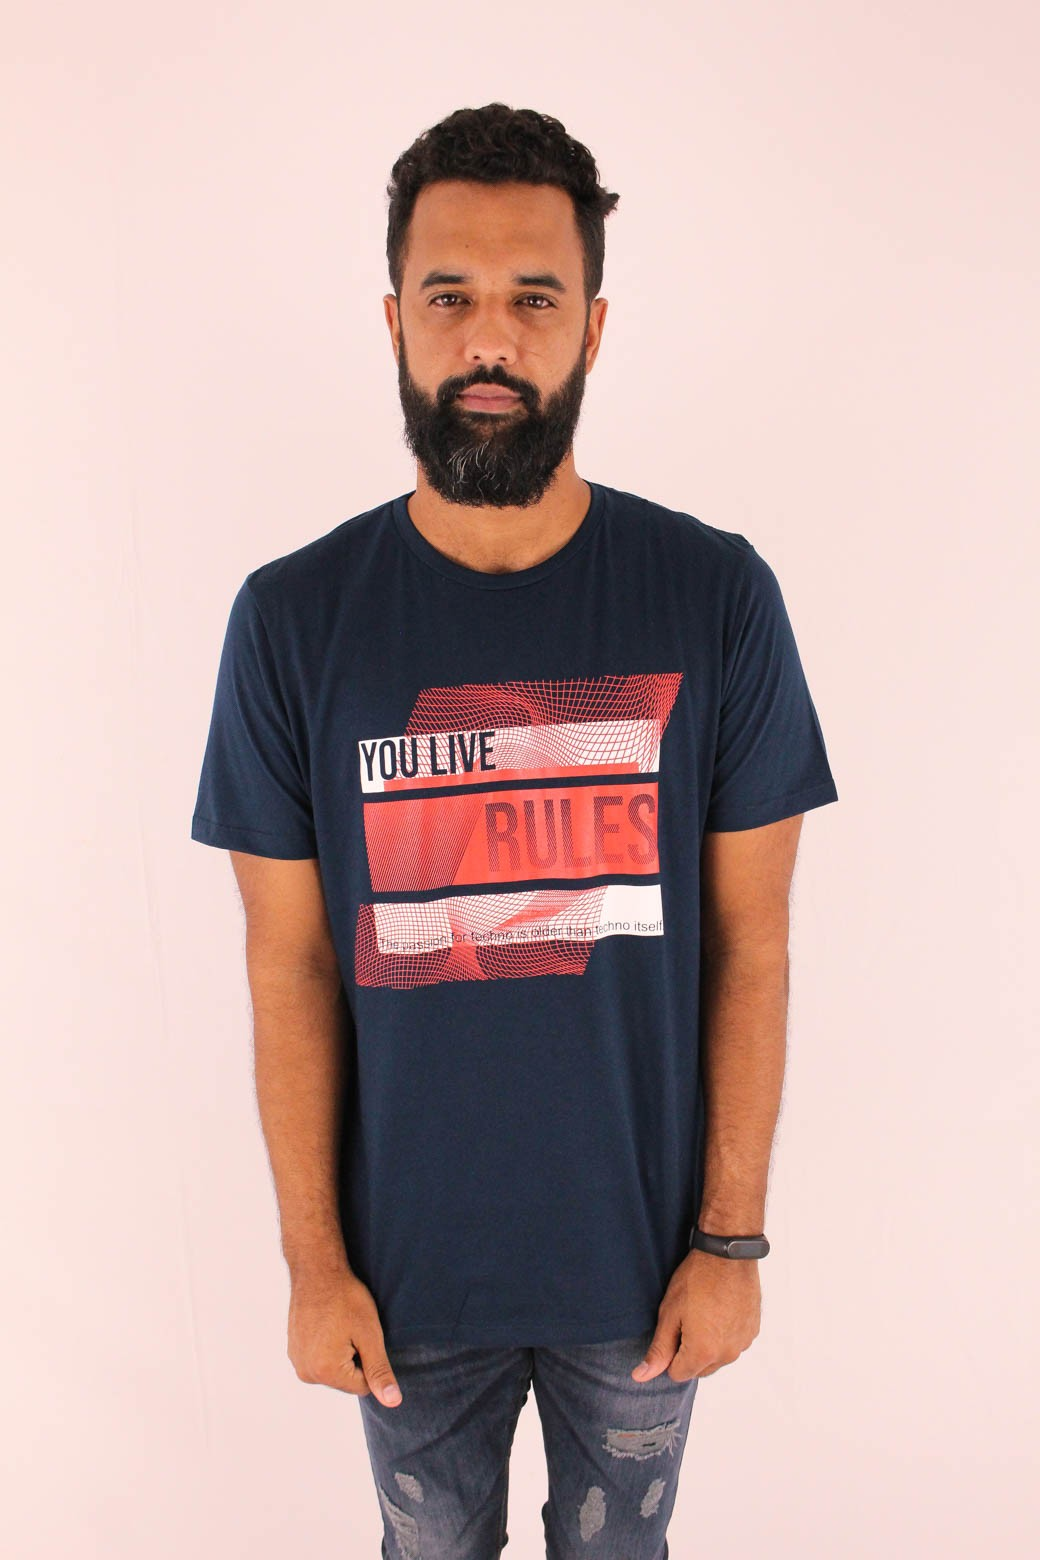 CAMISETA ESTAMPADA ALL FREE YOULIVE RULES